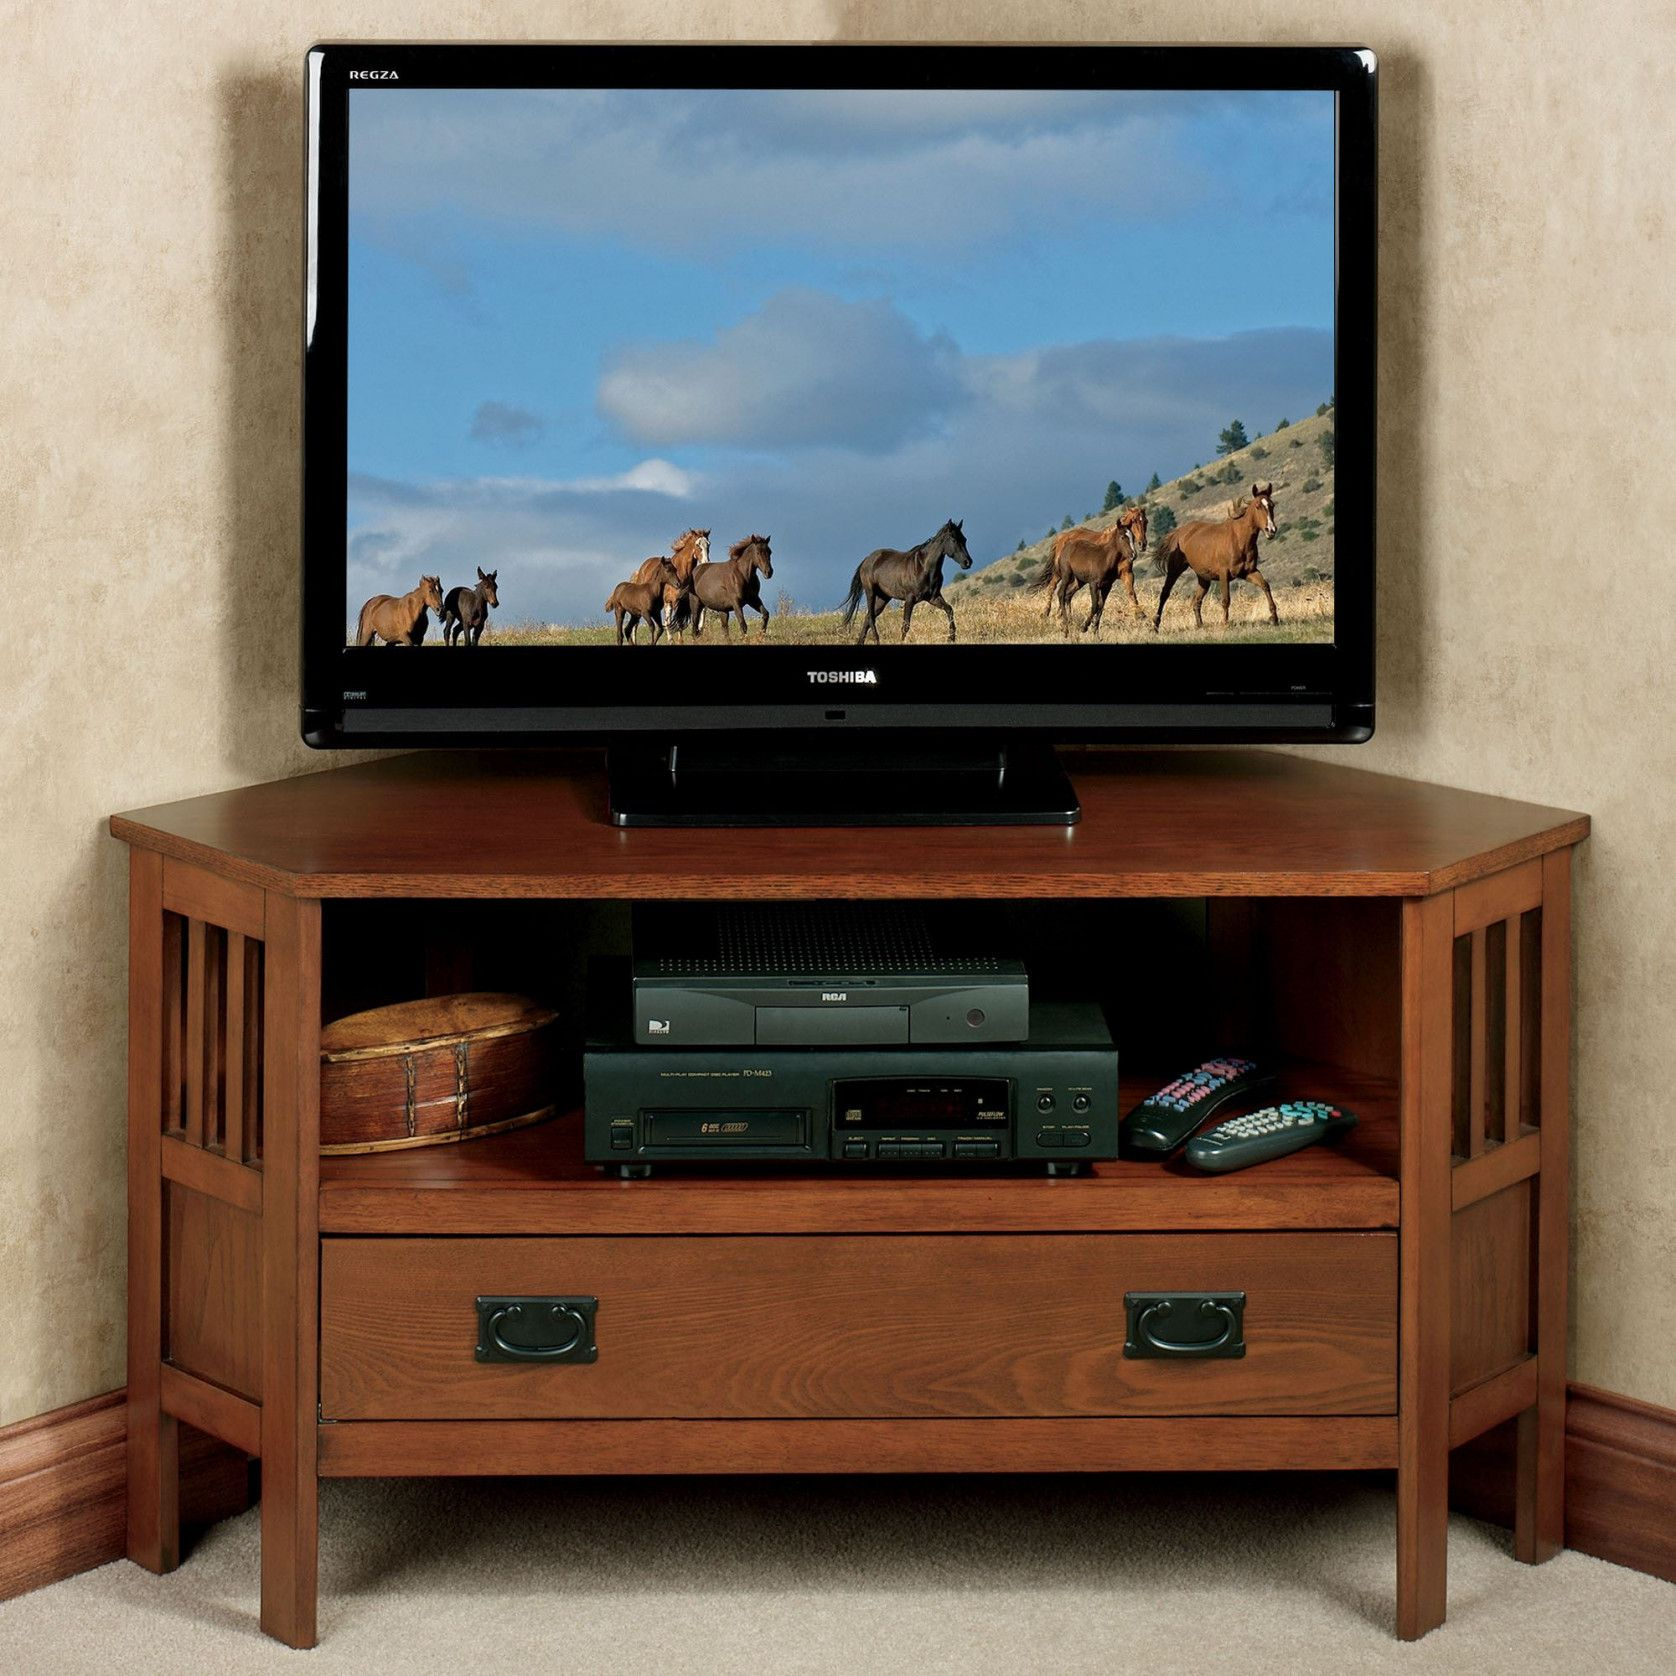 50 Corner Tv Cabinet For 55 Inch Tv Kitchen Decorating Ideas Themes Check More At Http Www Planetgreenspot Co Corner Tv Tv Media Stands Fireplace Tv Stand